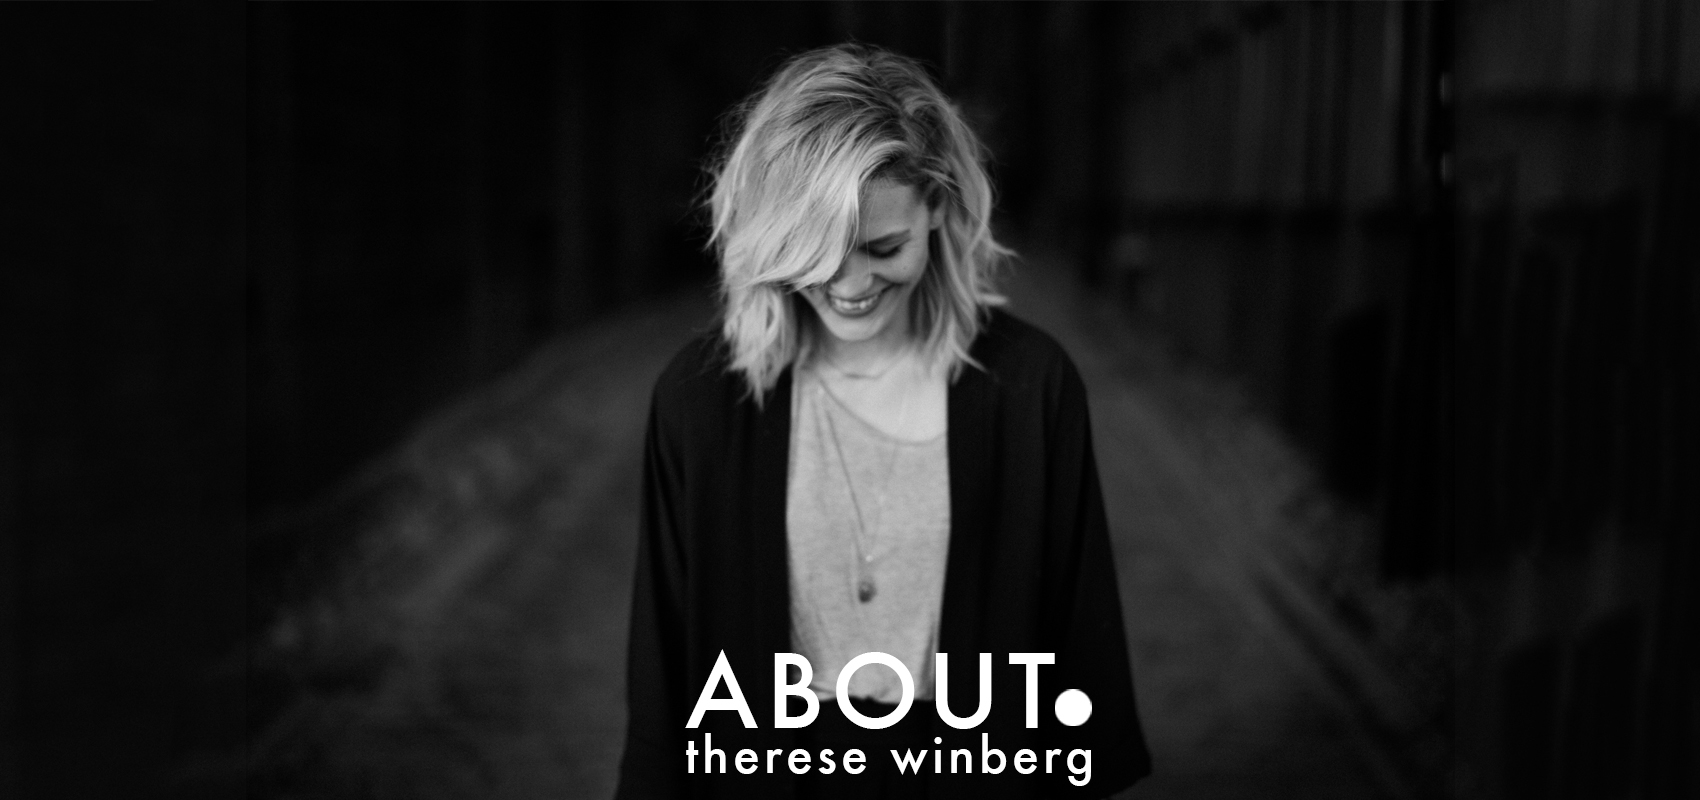 therese winberg